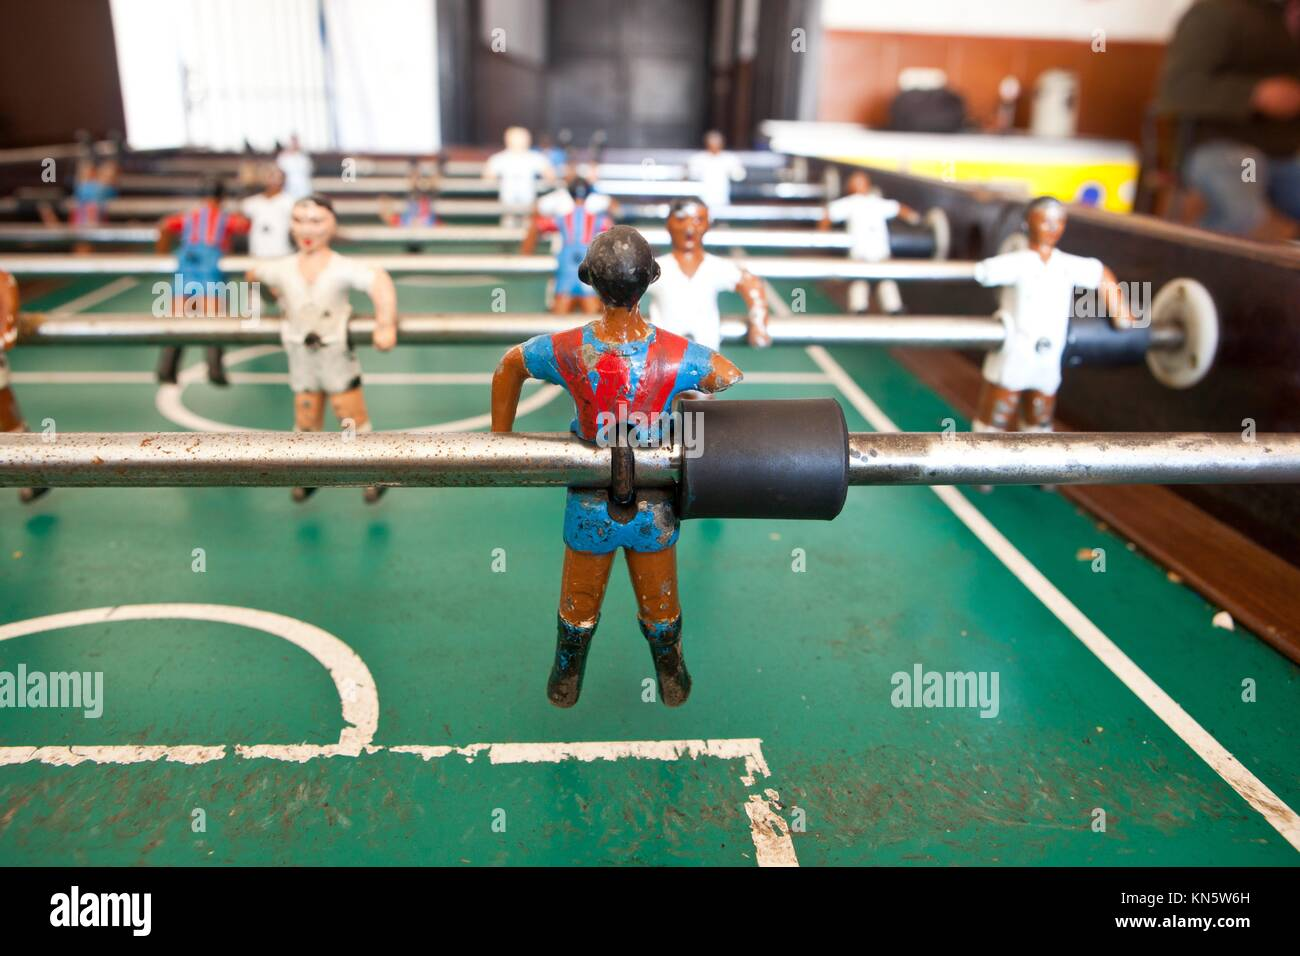 Table football in the bar, visible figures of toy mini football players wearing Real Madrid and Barcelona soccer - Stock Image